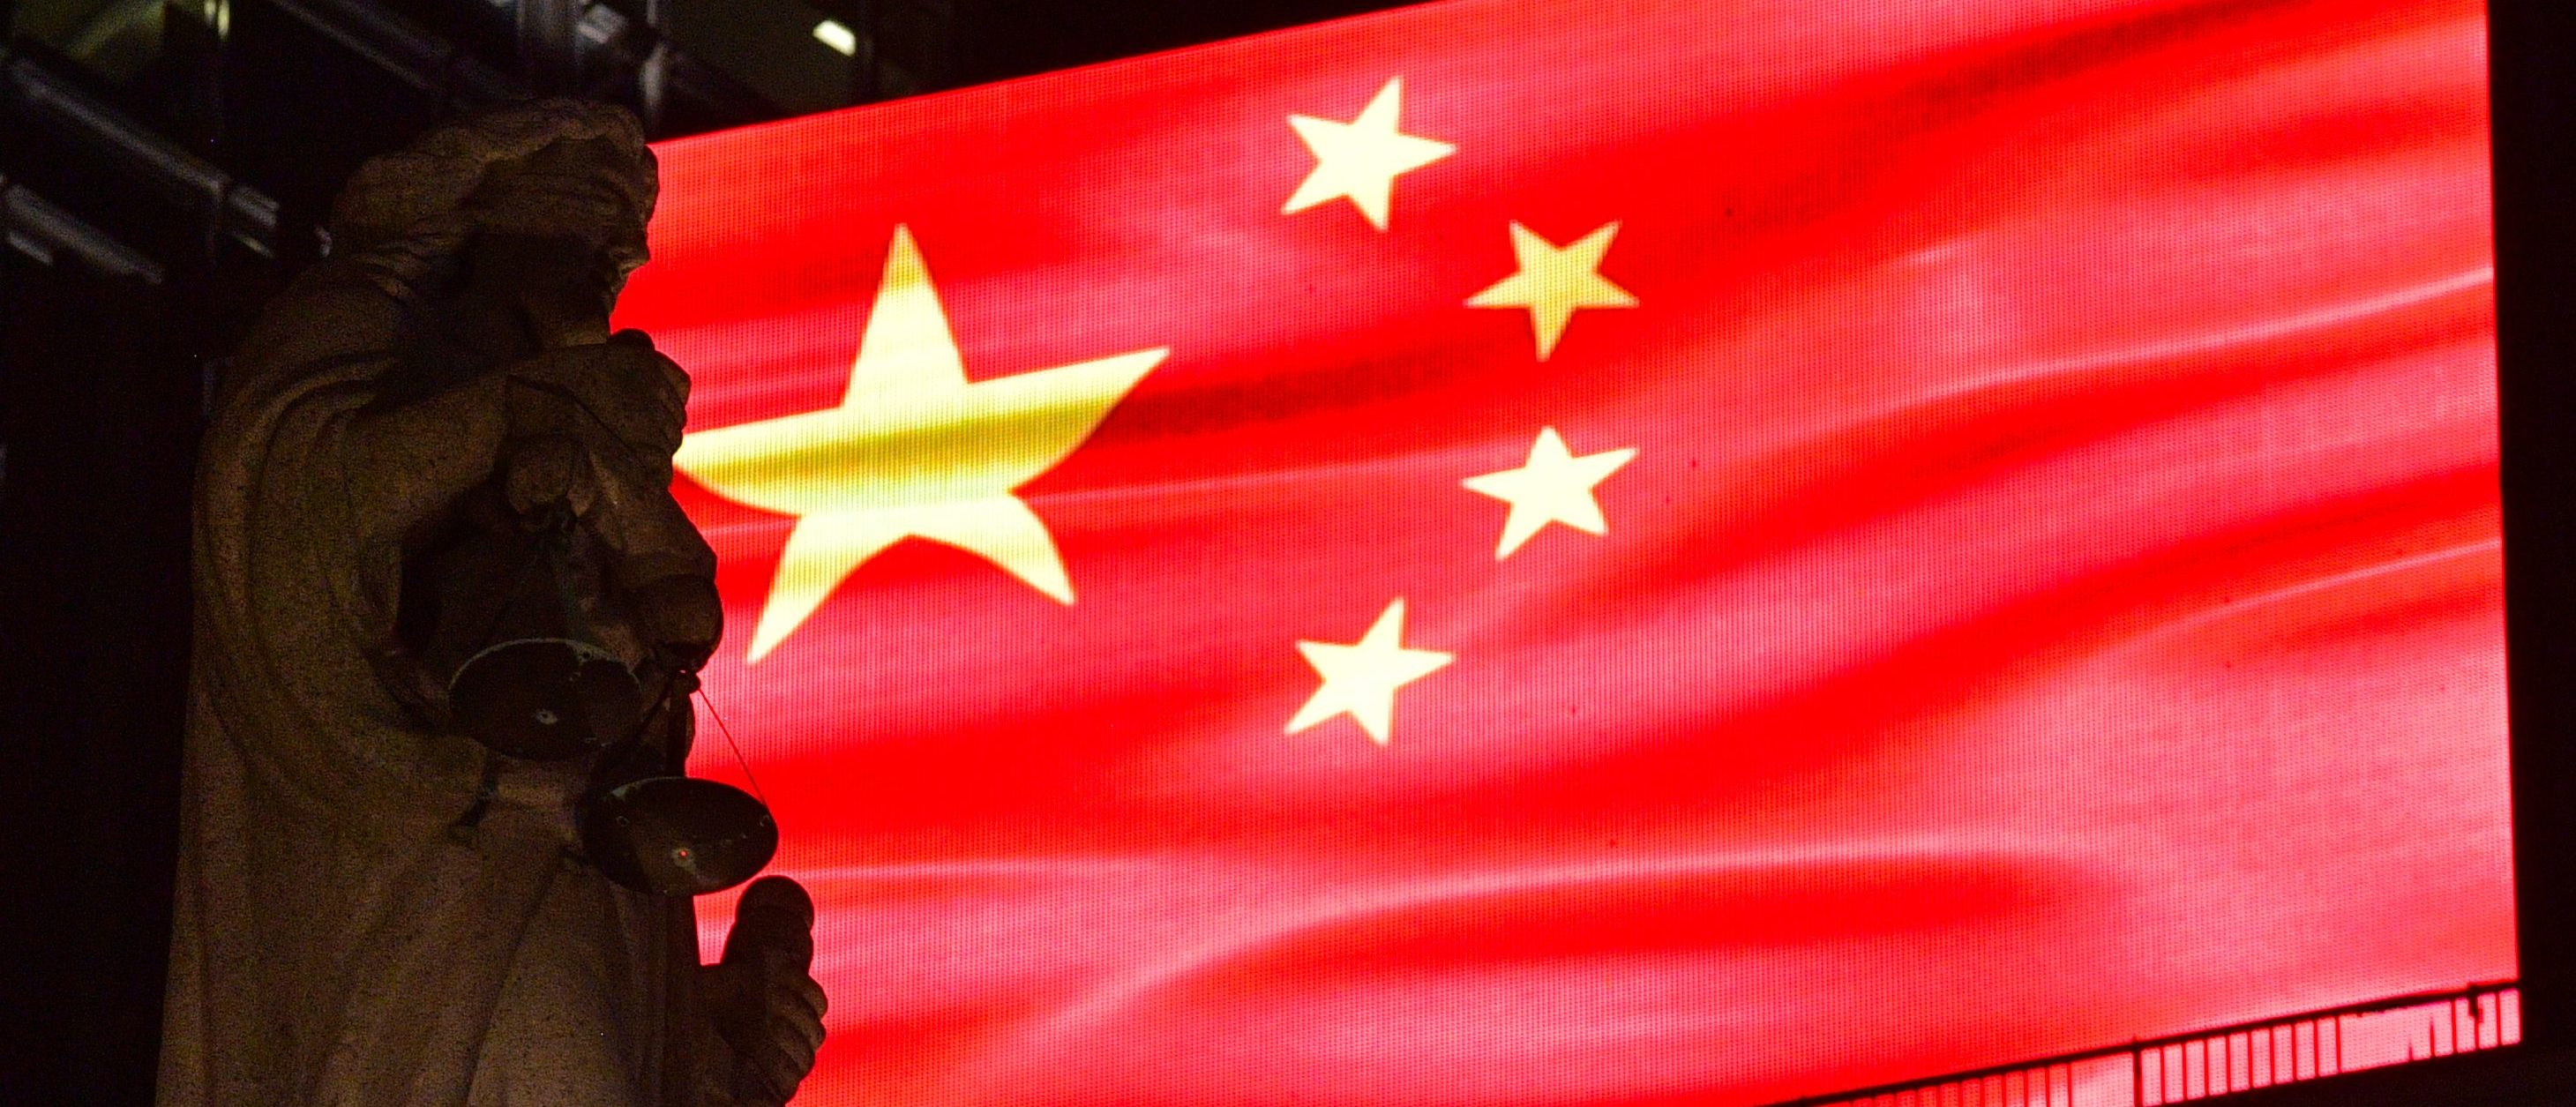 Elite American Institutions Keep Bowing To Communist China… Over And Over Again